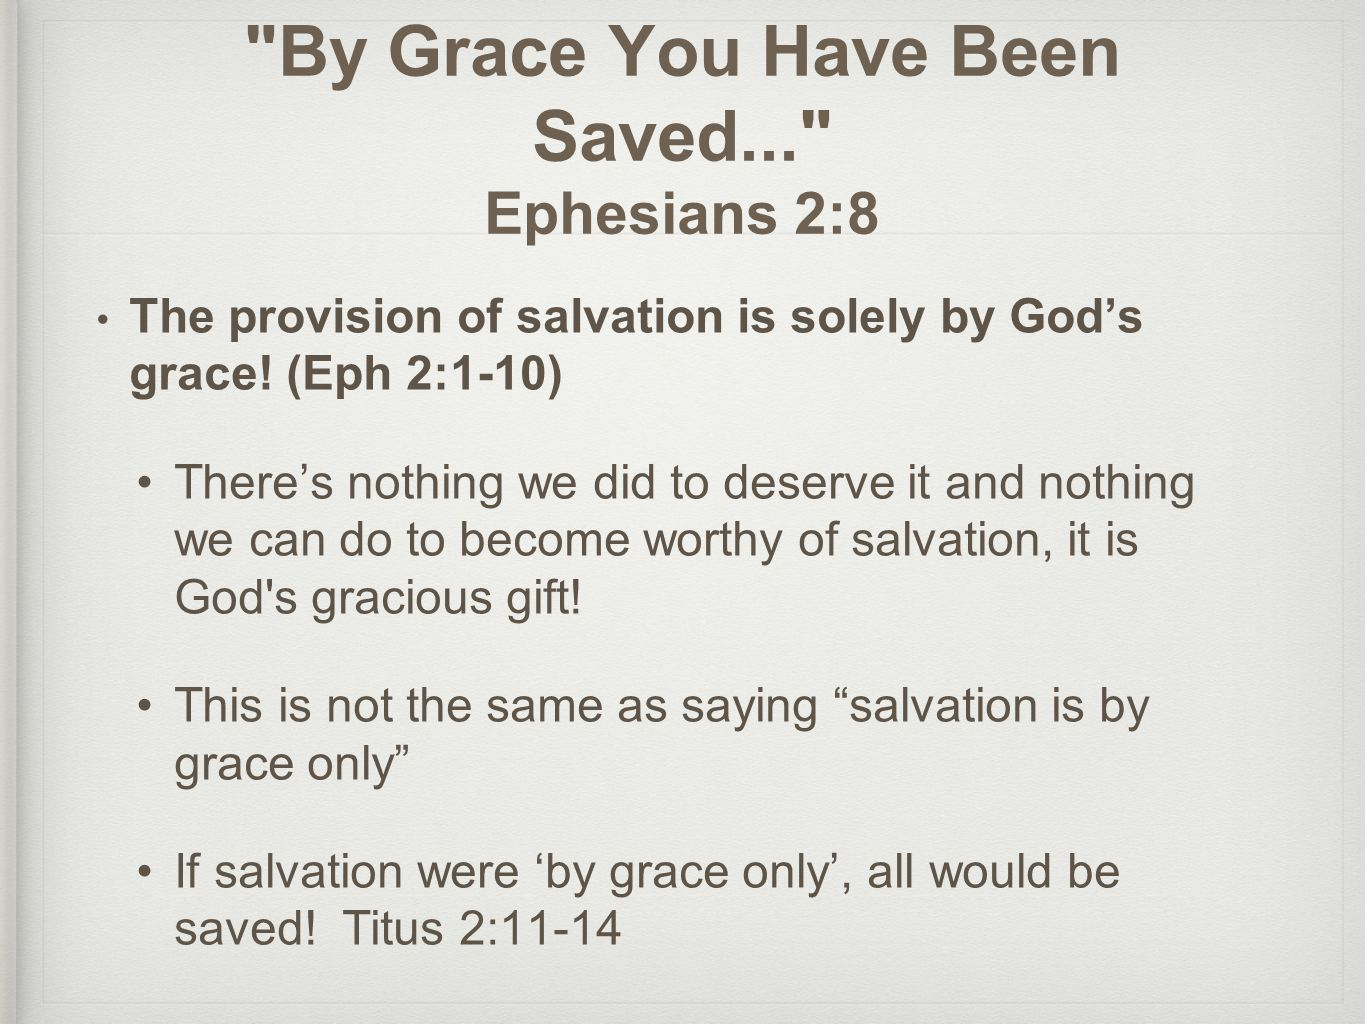 By Grace You Have Been Saved... Ephesians 2:8 The provision of salvation is solely by God's grace.